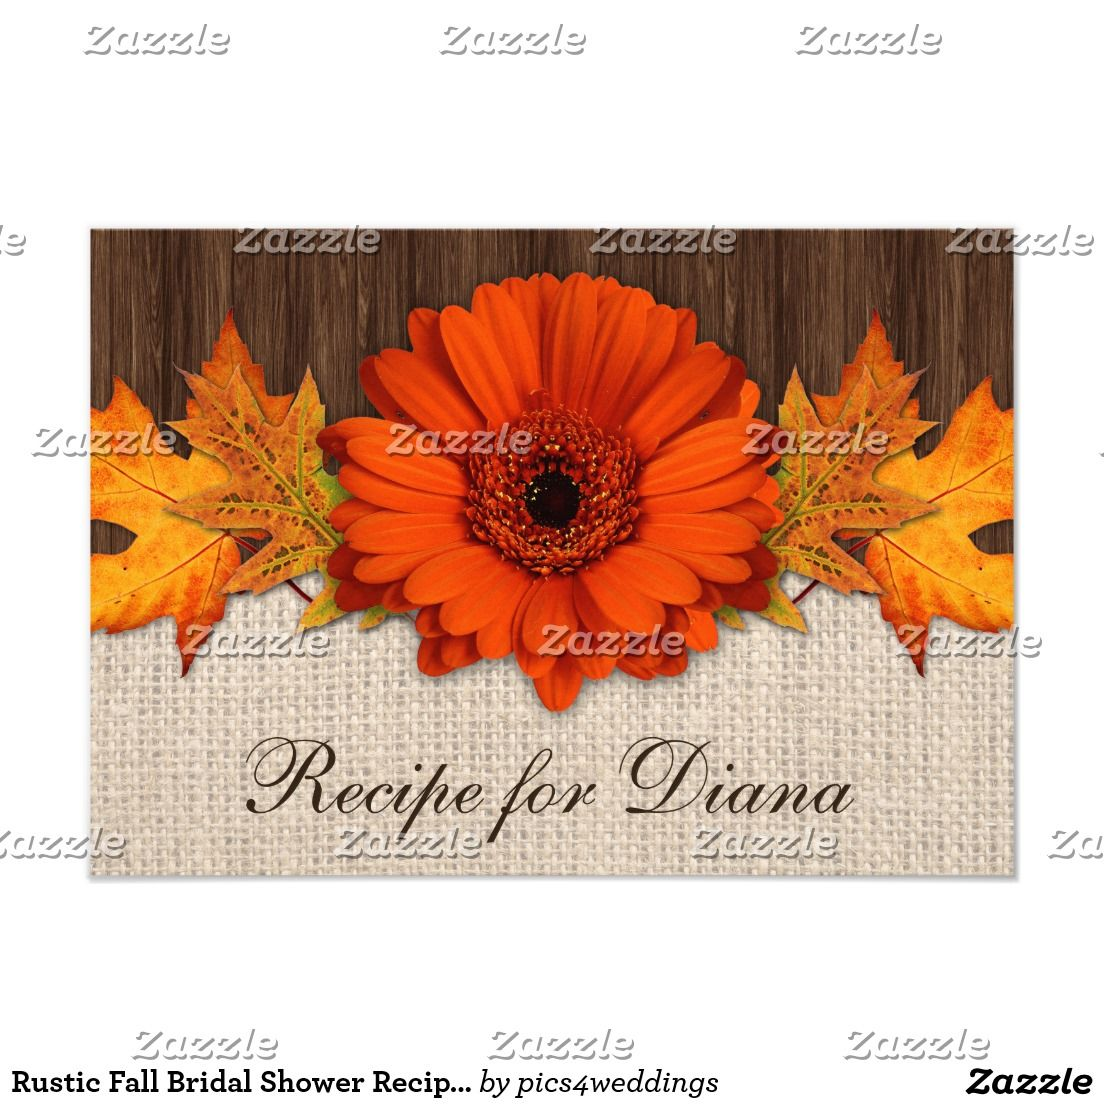 Rustic Fall Bridal Shower Recipe Cards Template | Bridal Shower ...